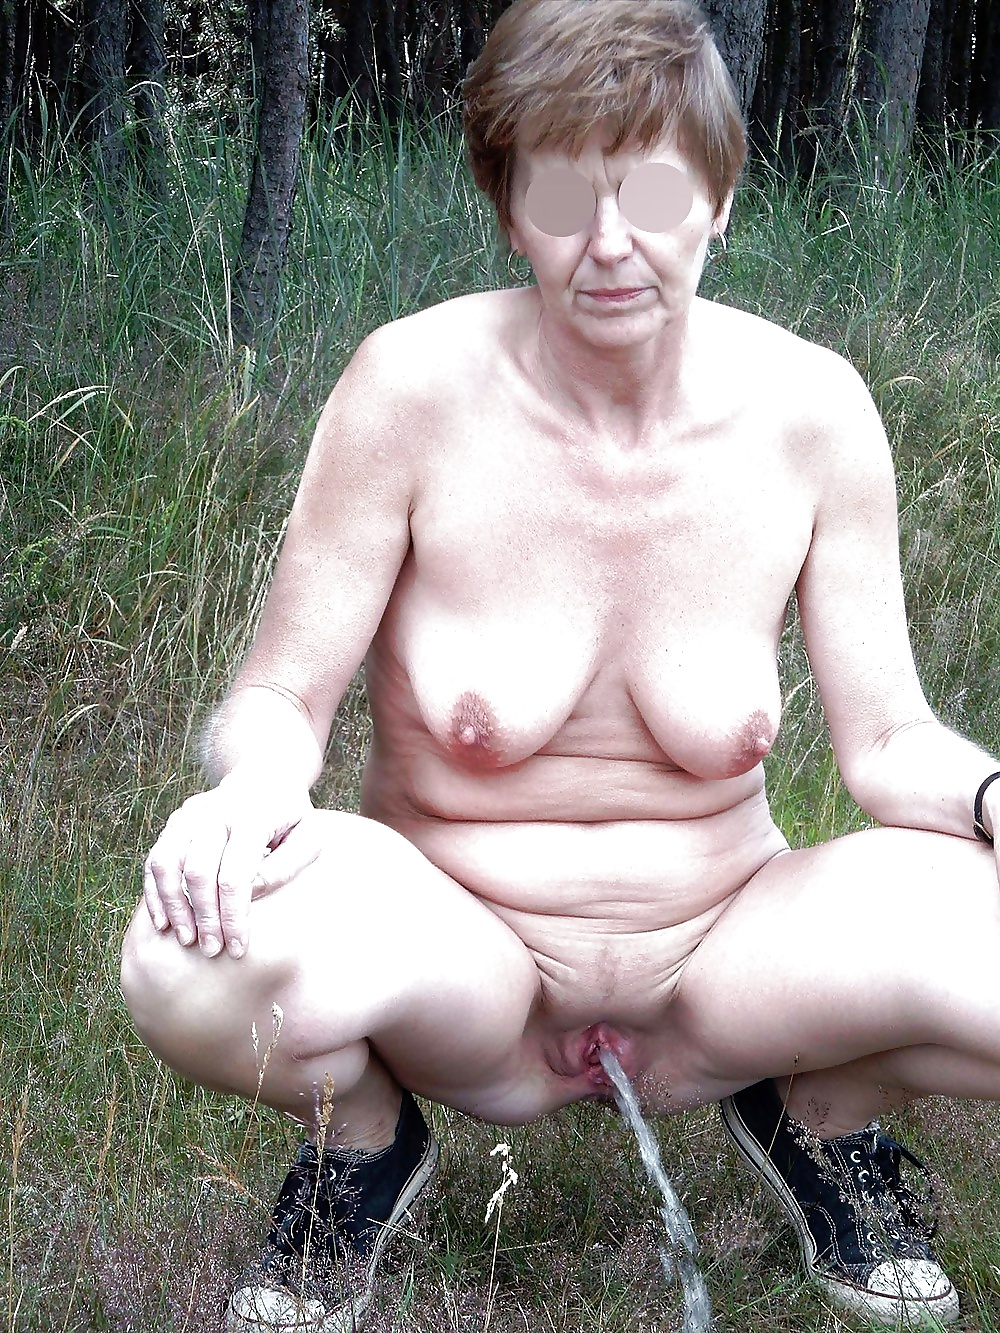 Pissing category of this granny porn site